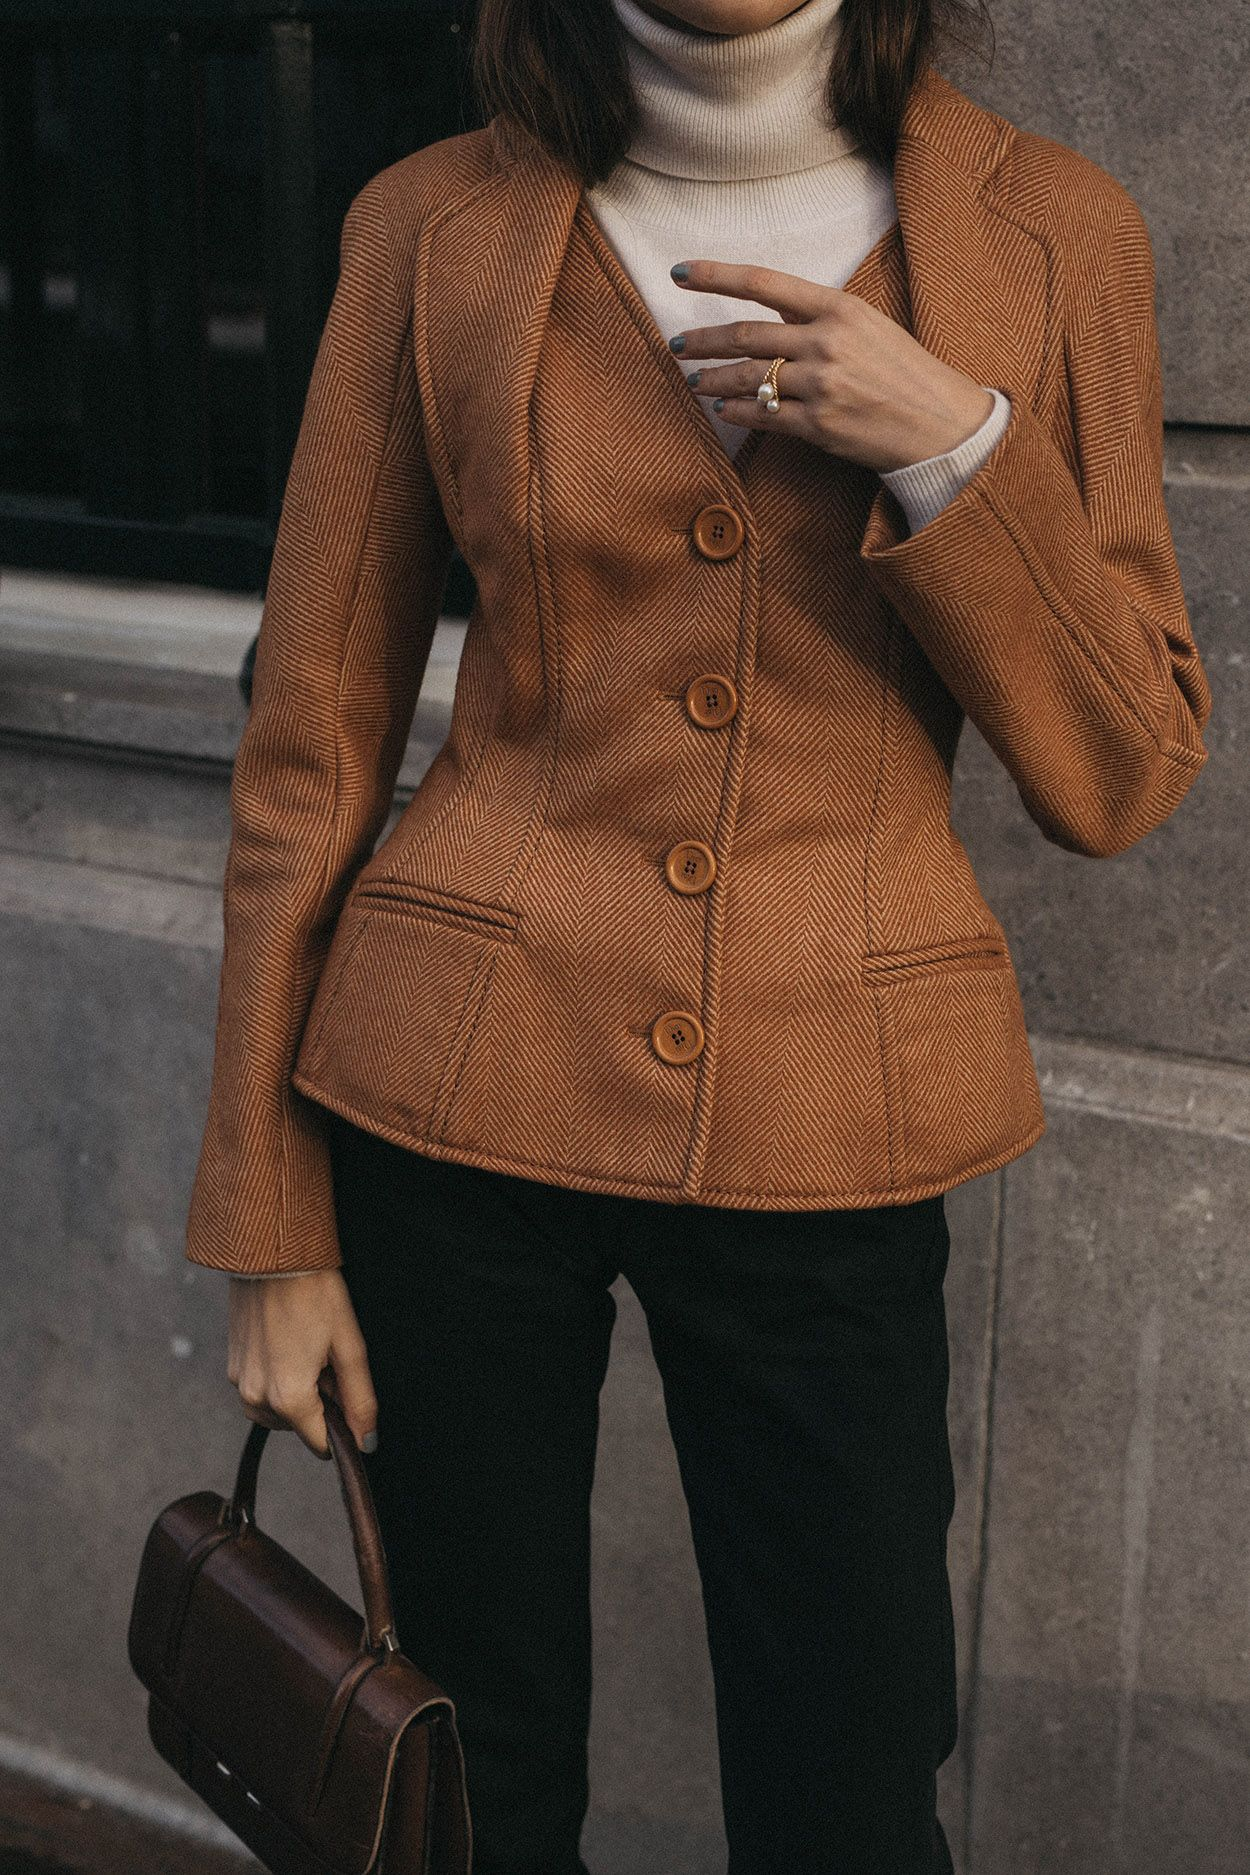 7eda19785a How to wear a vintage Christian Dior iconic bar jacket vestiaire collective  shopping editorial unique style